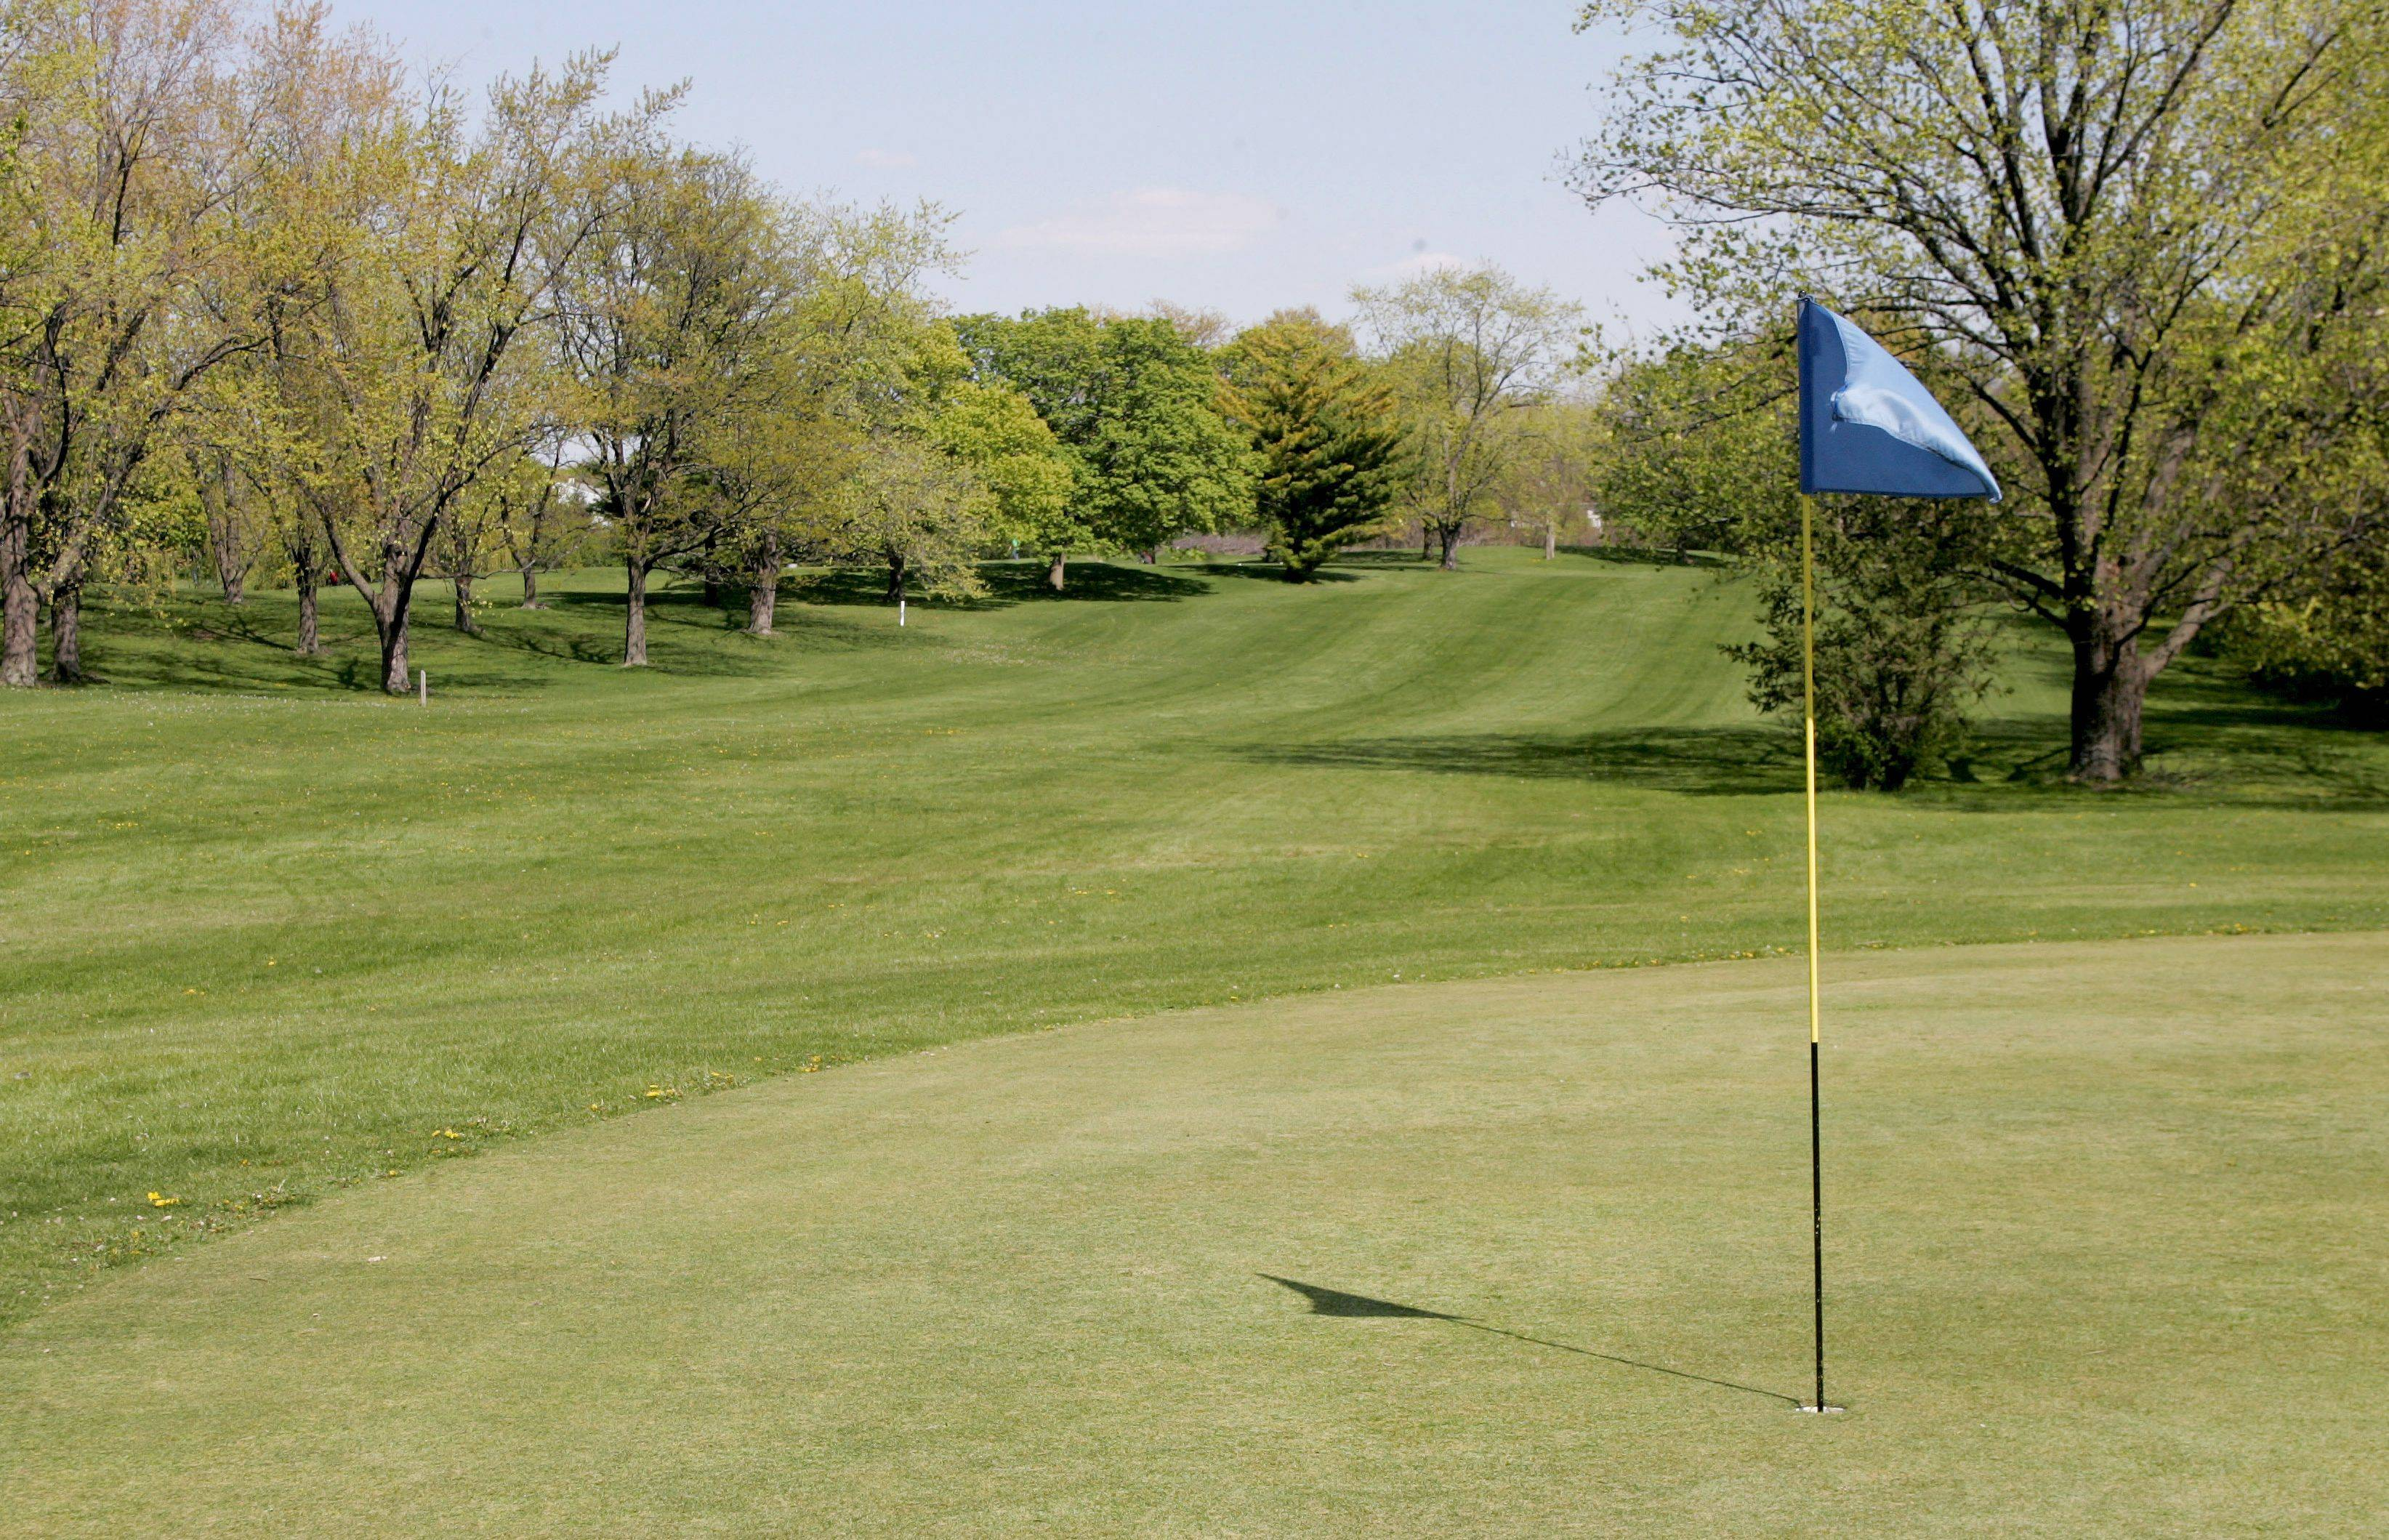 Lombard trustees agreed Thursday night to revisit the village's comprehensive plan as it relates to the Ken-Loch Golf Links, which is planned to remain open space. Revisiting the plan could allow for a proposed apartment and townhouse development to be built.